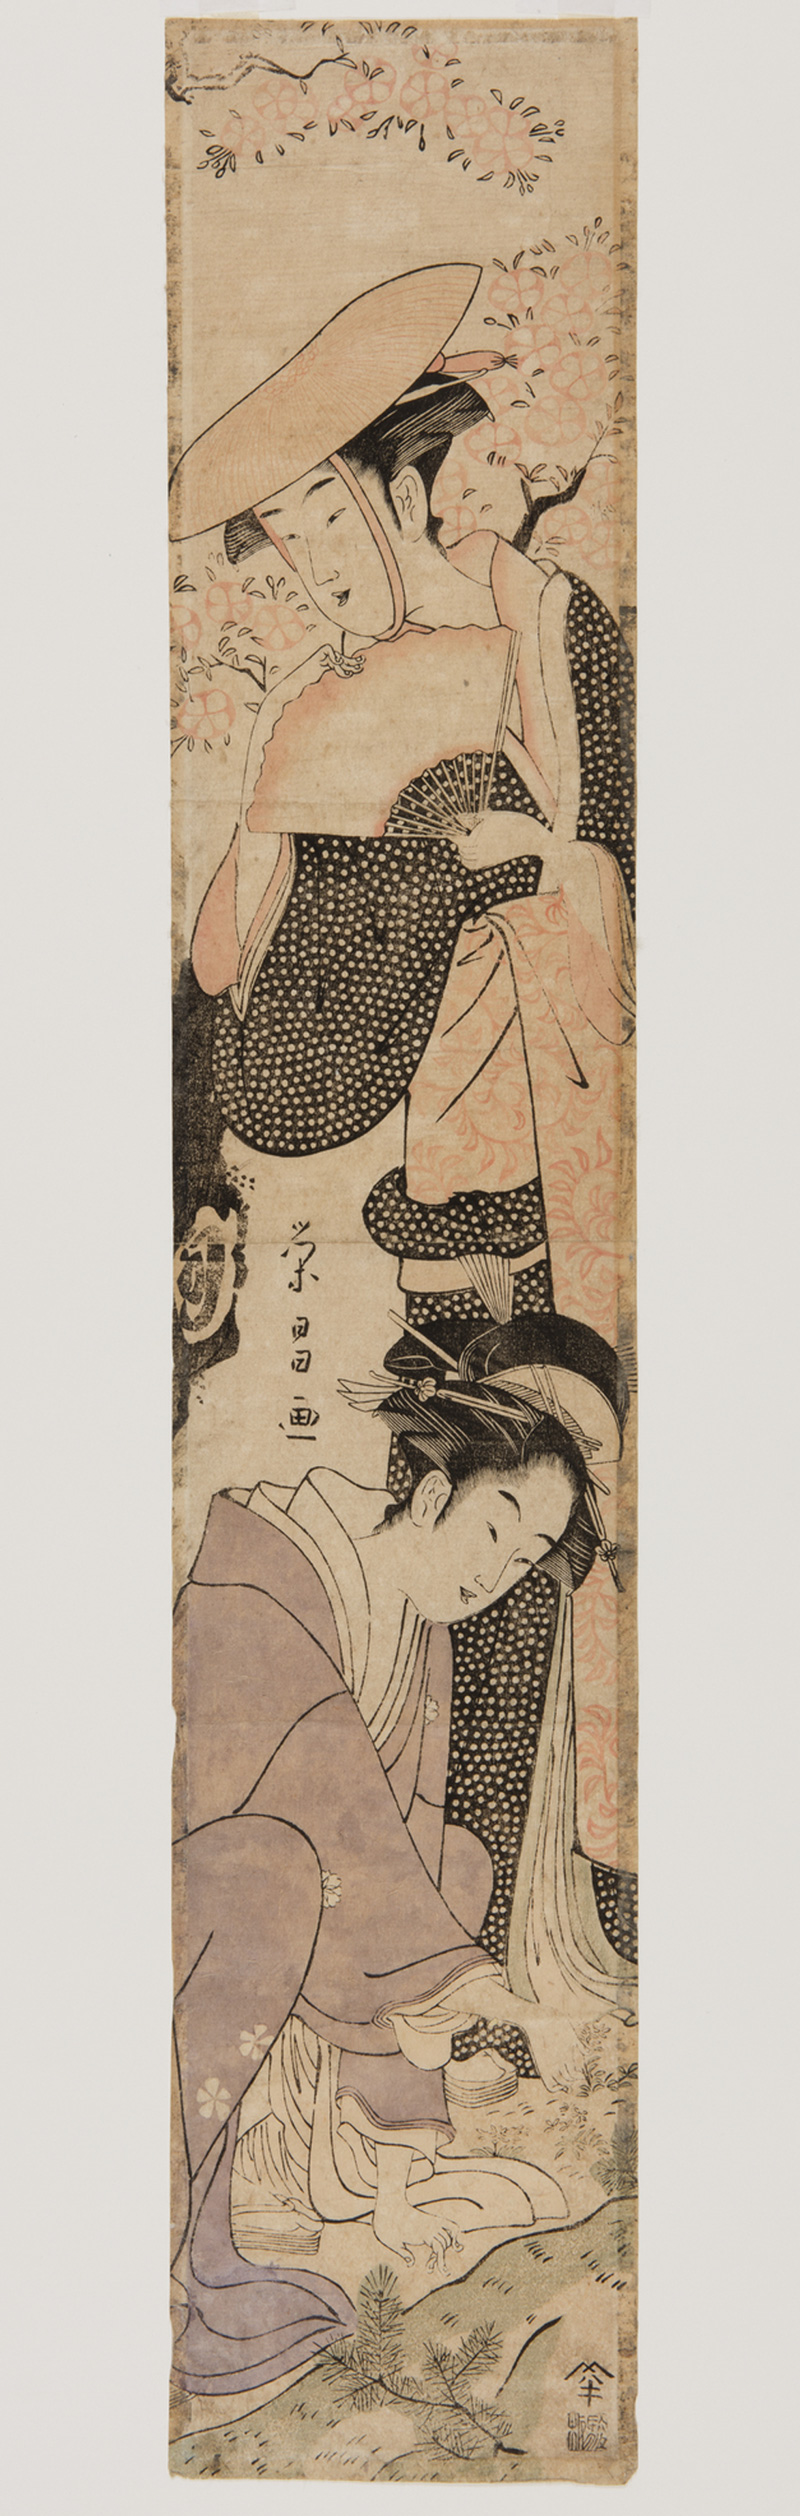 Japanese print of two women dressed in traditional clothes, one standing, one kneeling.